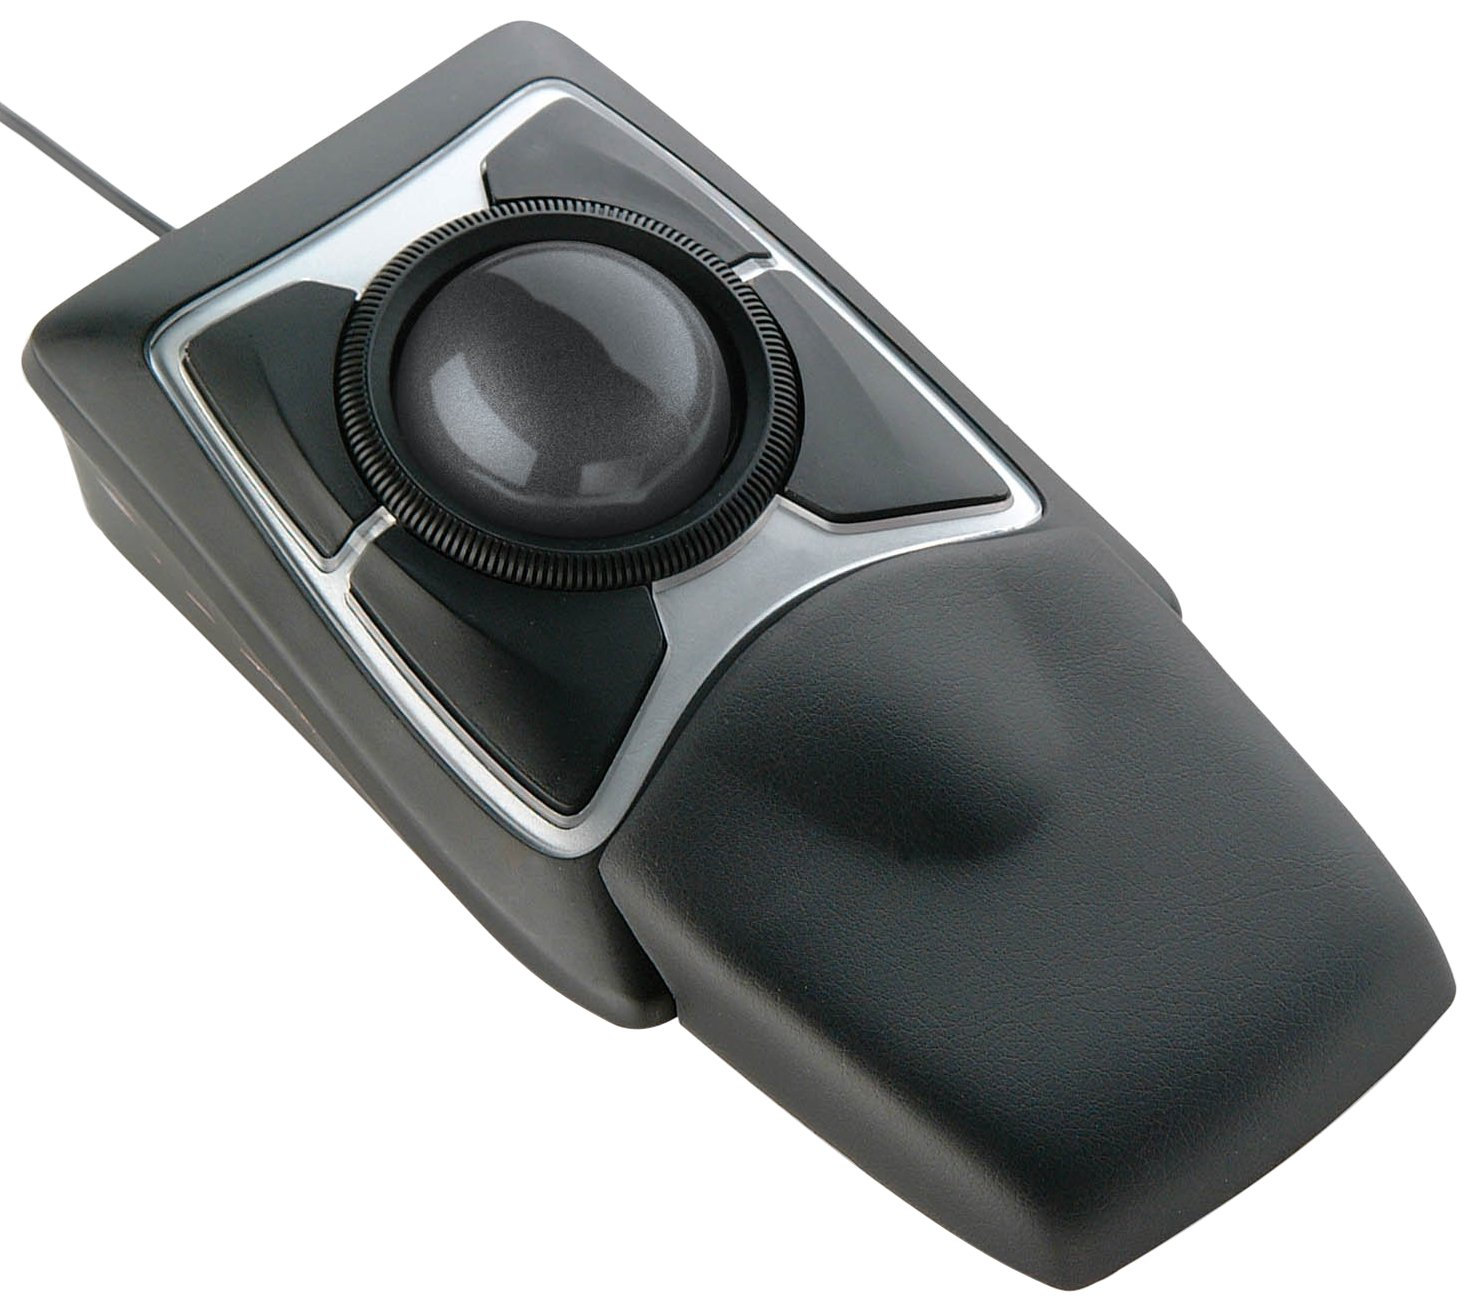 kensington expert wireless trackball mouse review